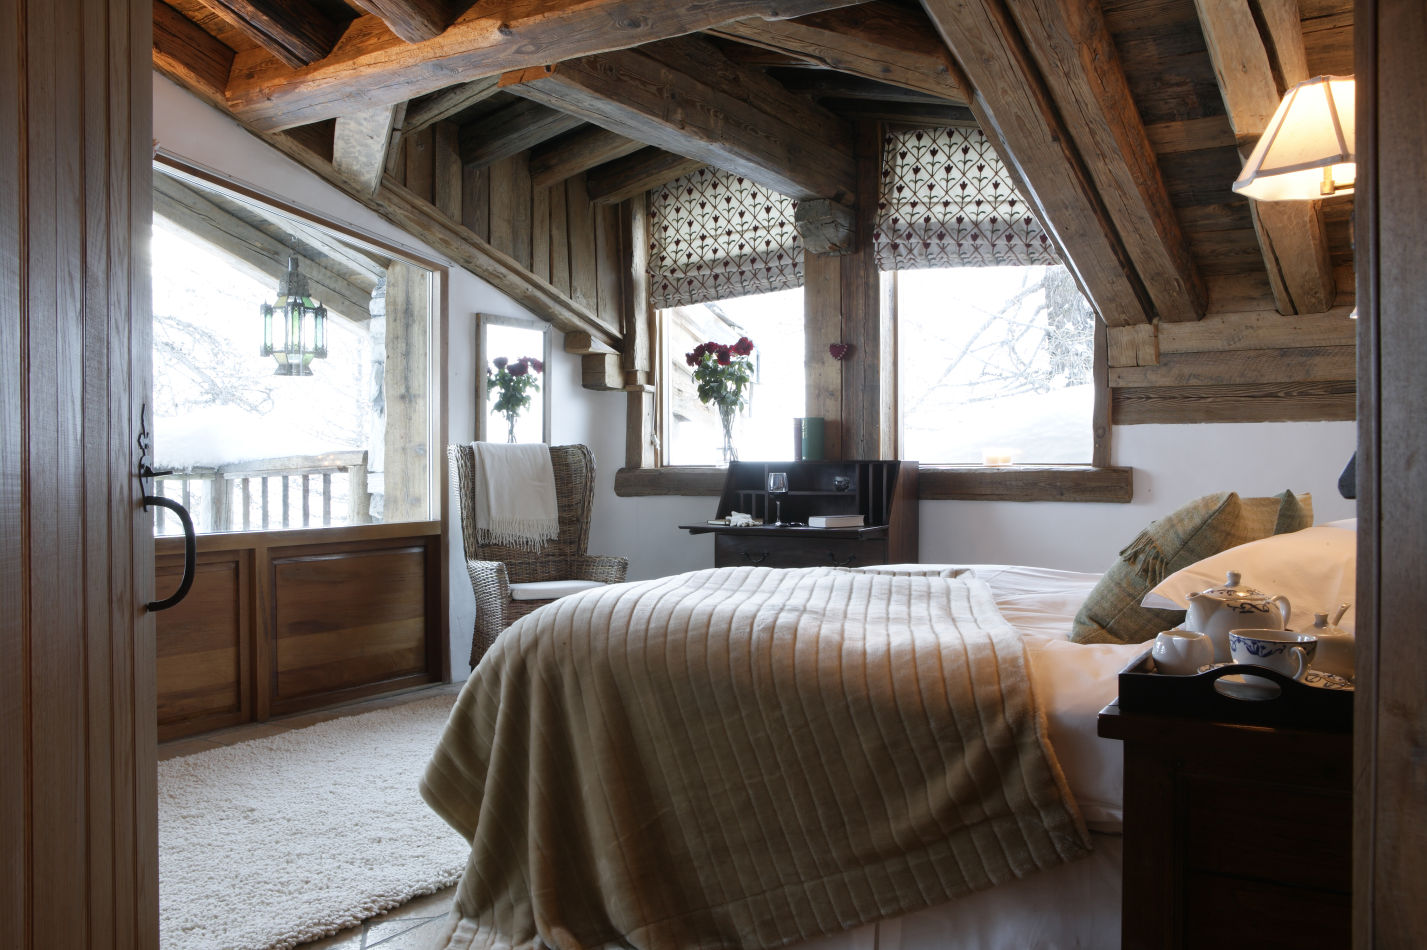 Bedroom view in Chalet Le Chardon